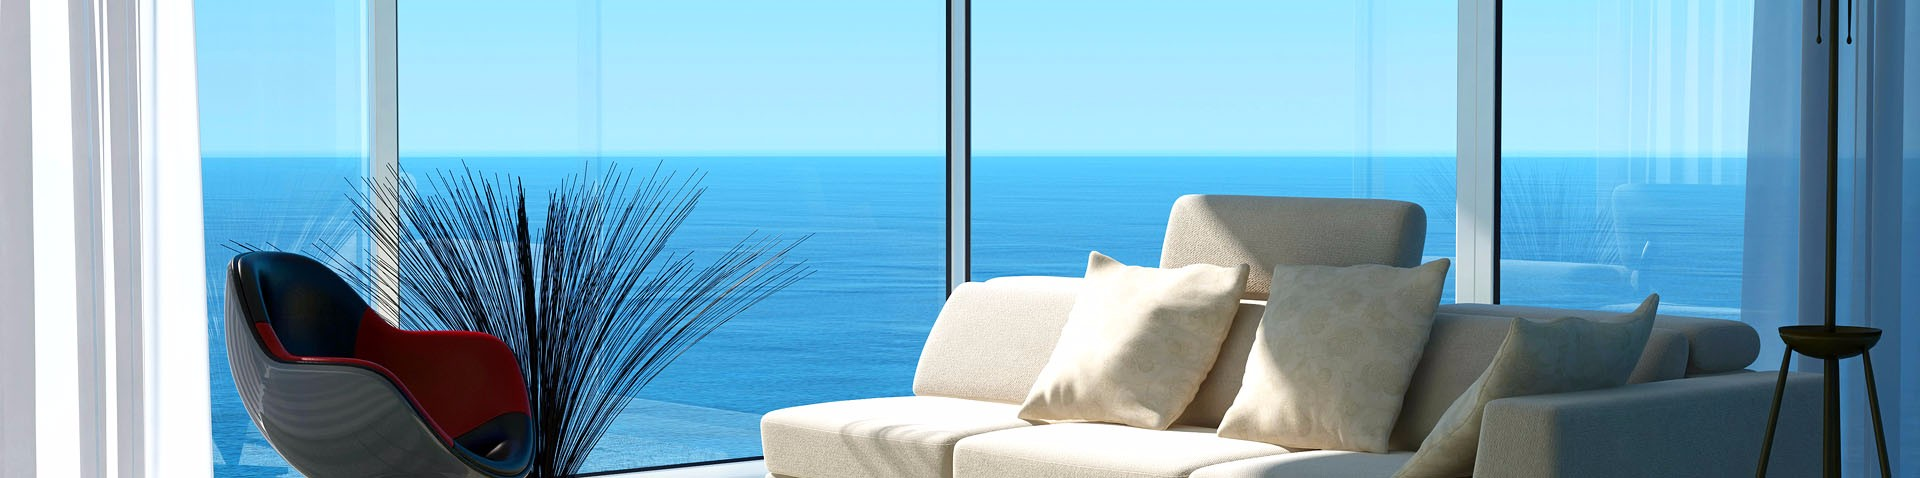 windows with ocean view